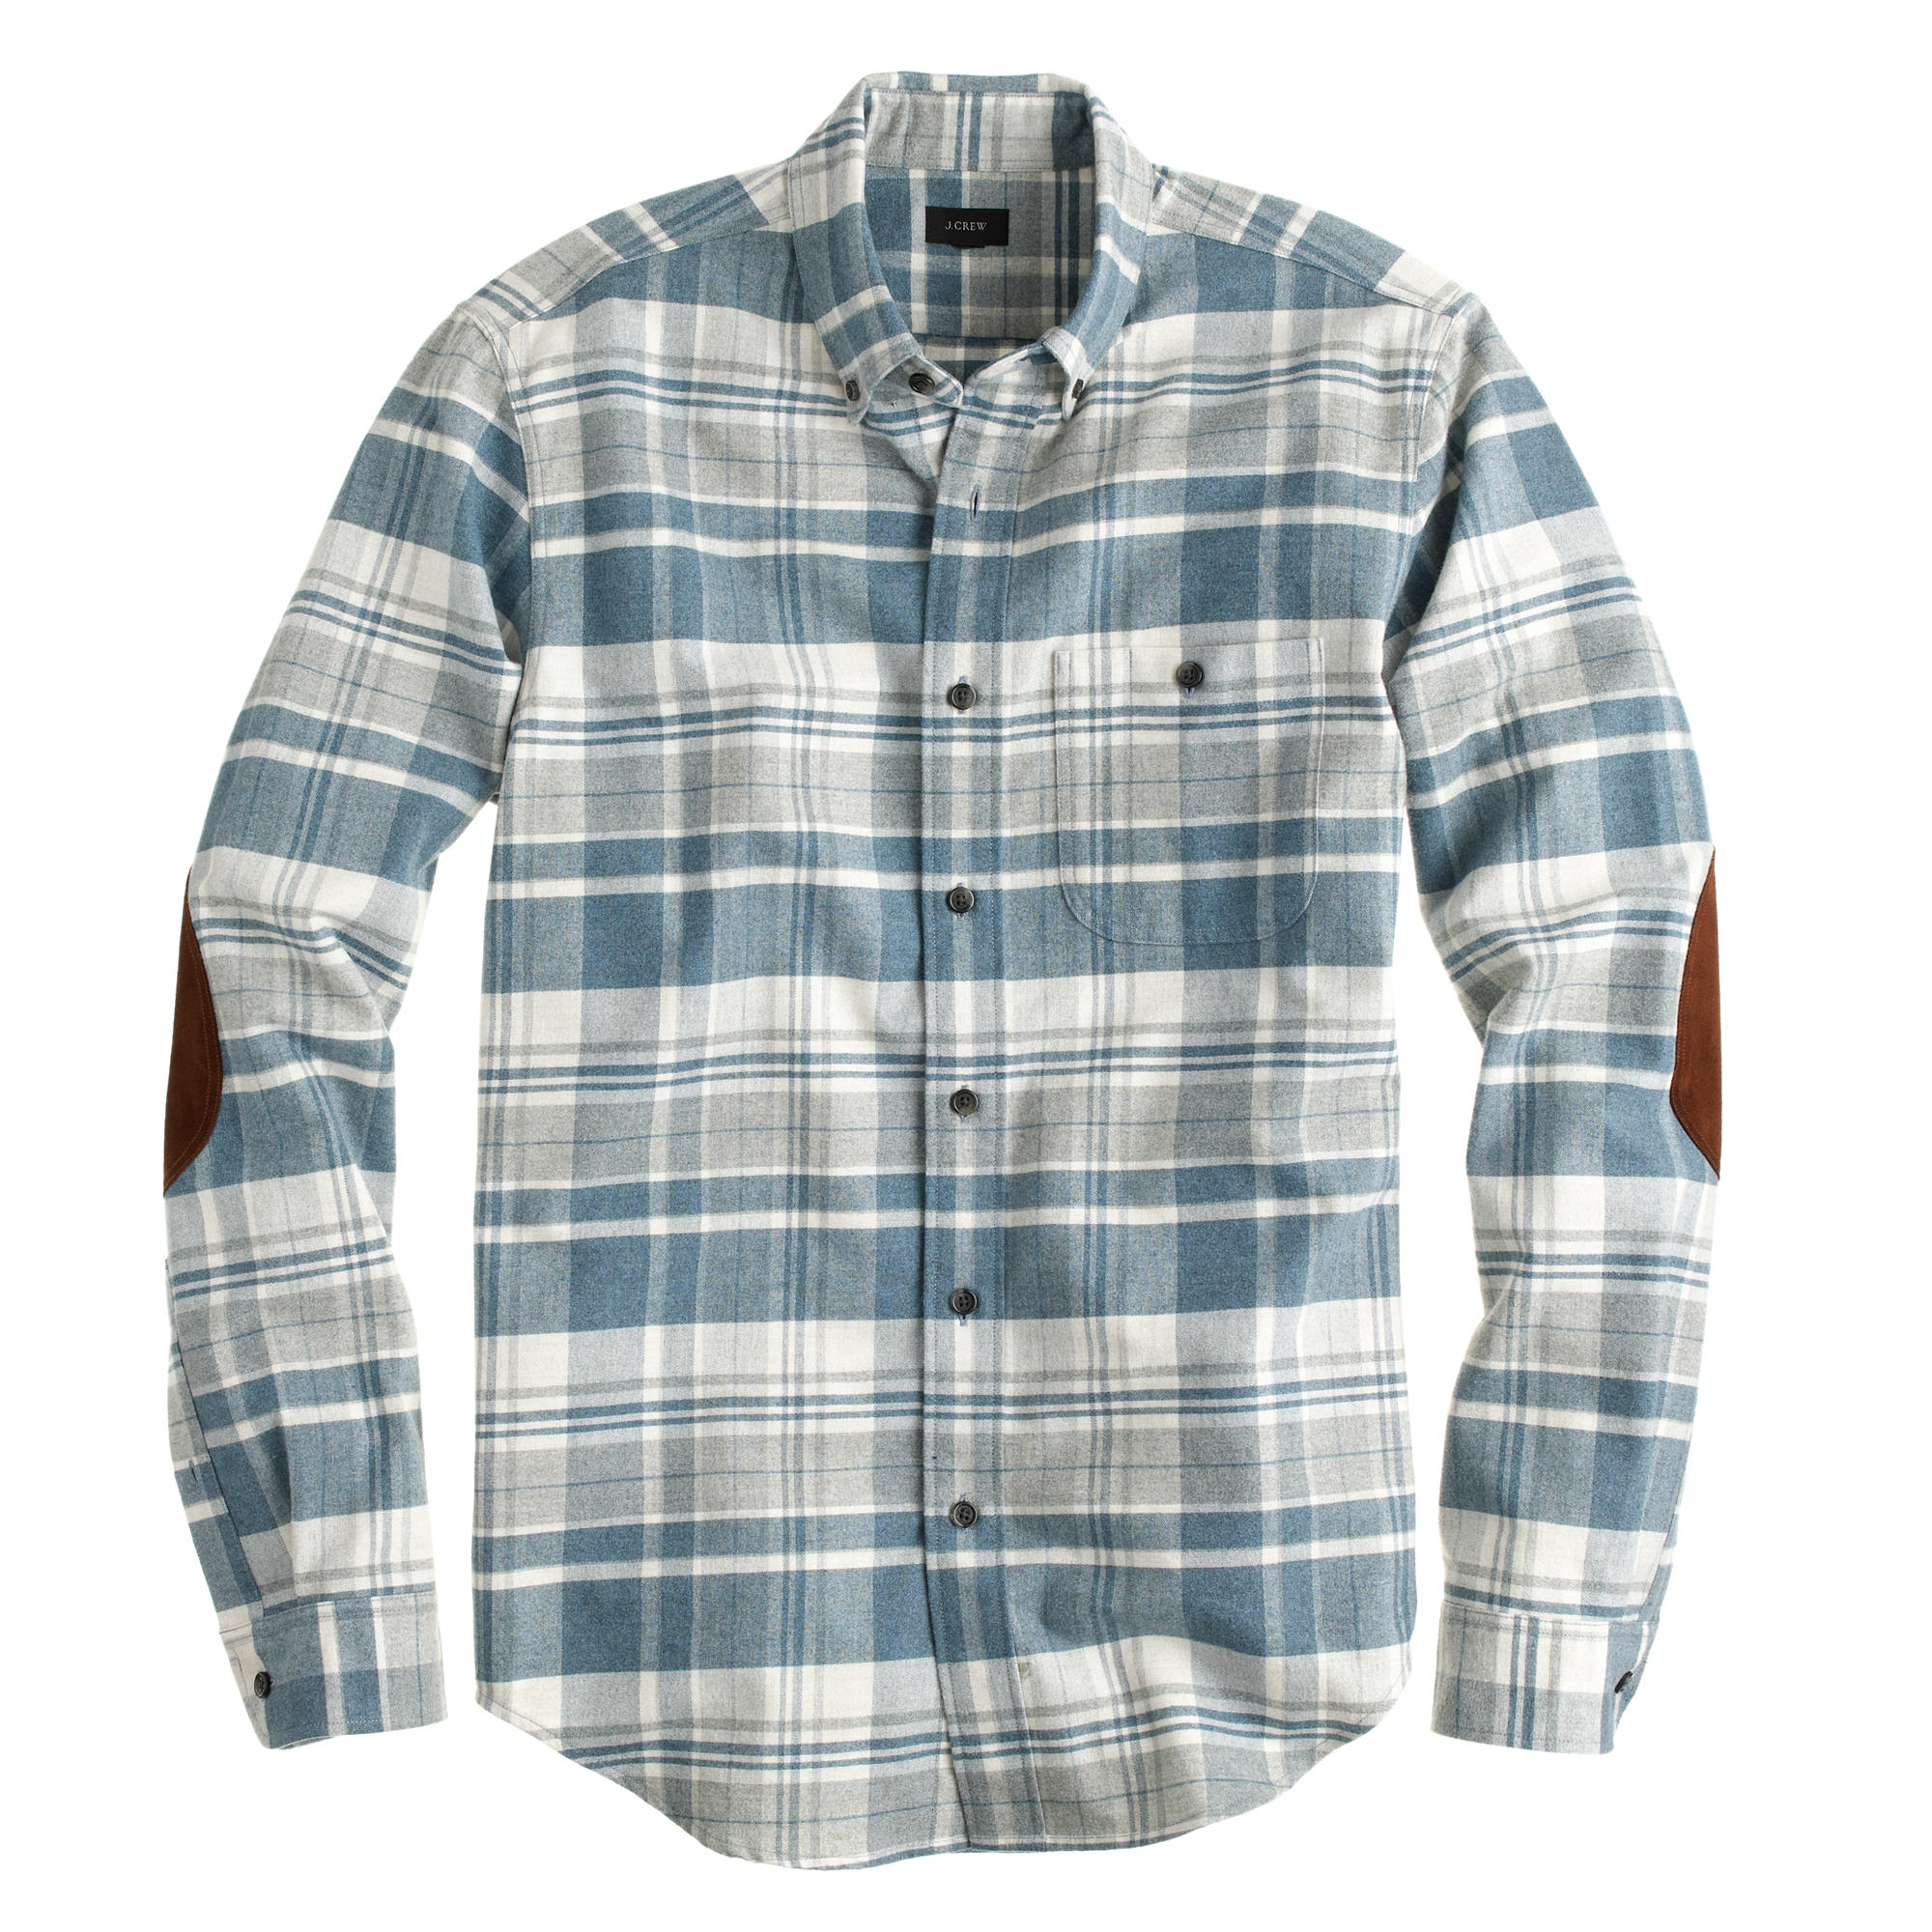 Chamois Elbow Patch Shirt In Heather Granite Plaid J Crew